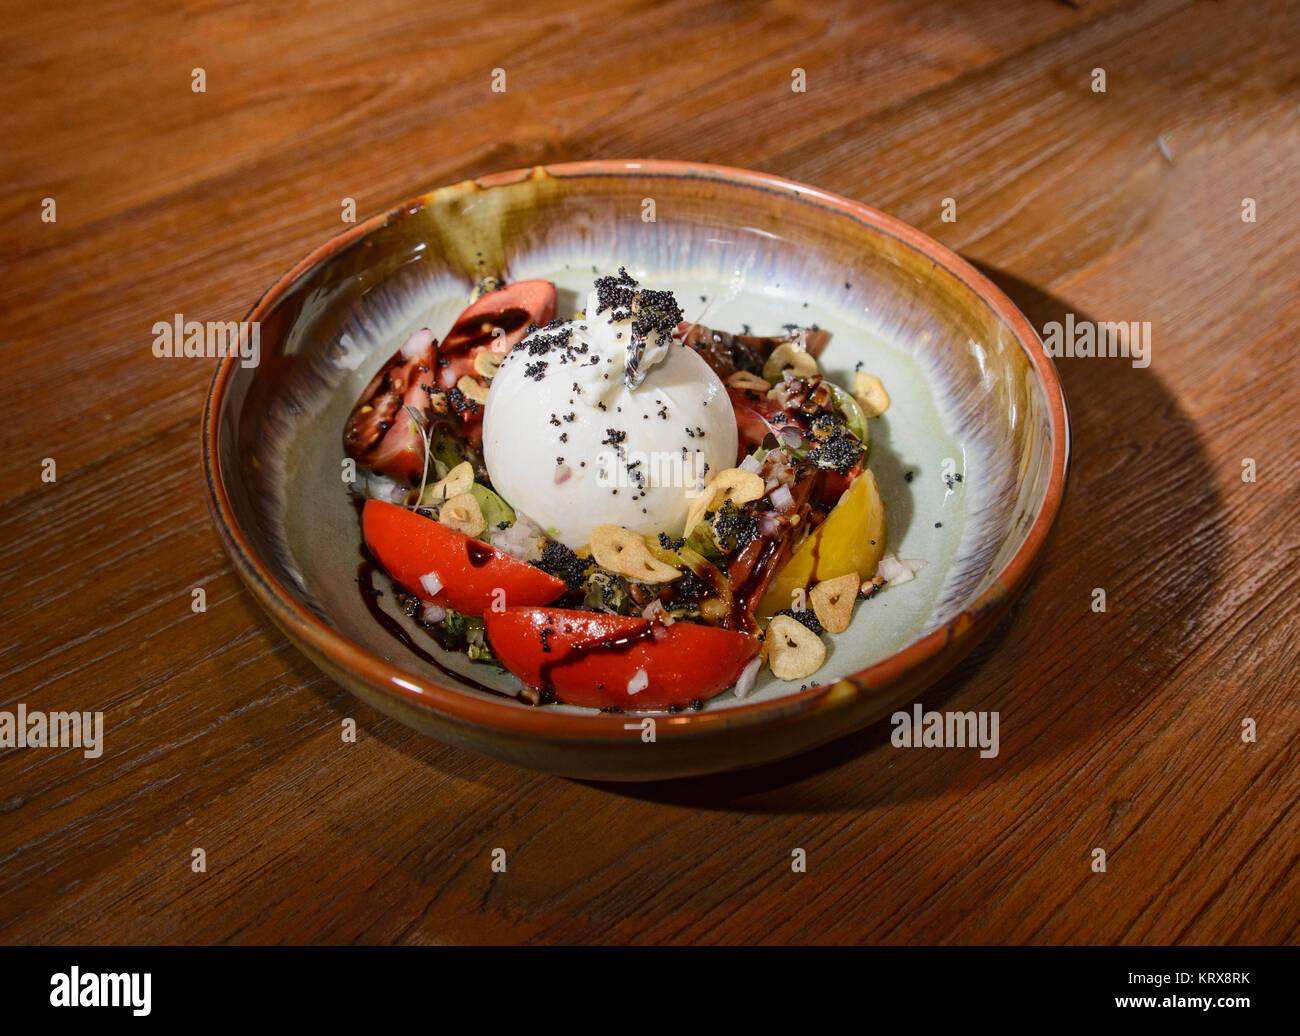 Burrata cheese plate at a restaurant in Bangkok, Thailand